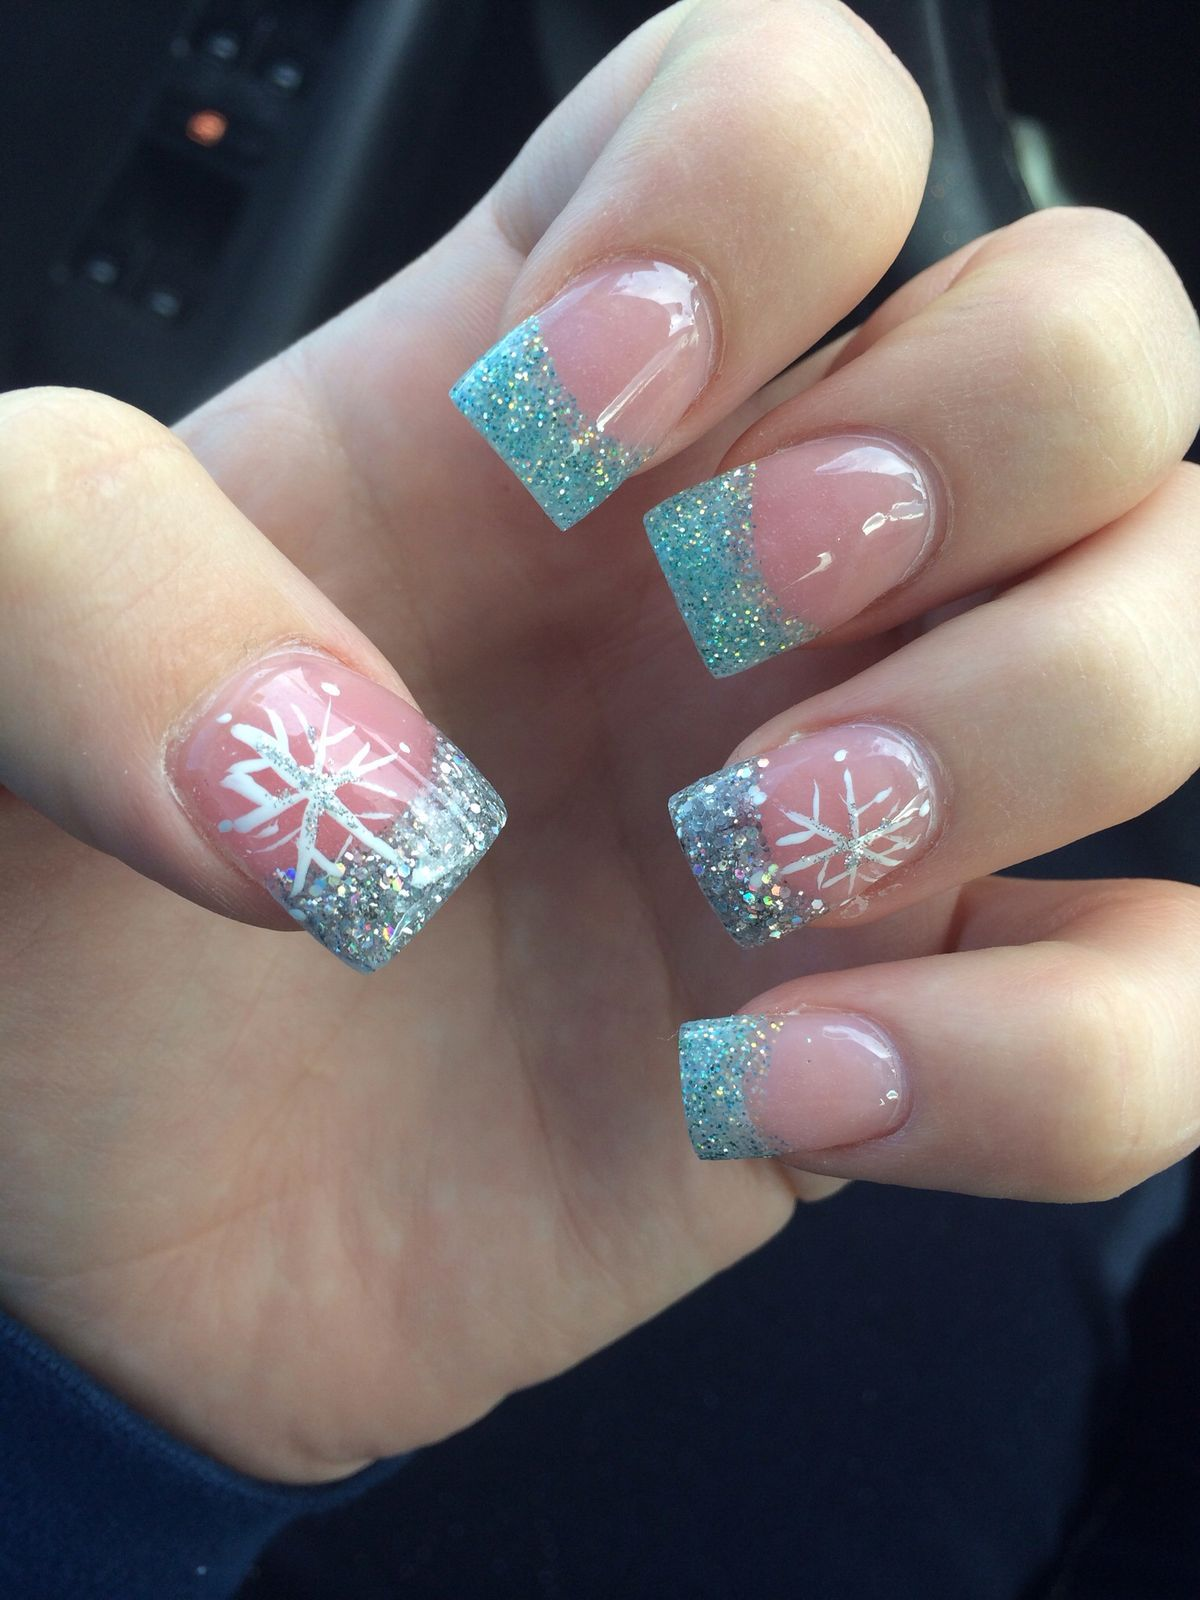 Holiday nails current set (baby blue w/snowflakes) - Cc1acce550acd7d81bf623602606947f.jpg 1,200×1,600 Pixels Nails